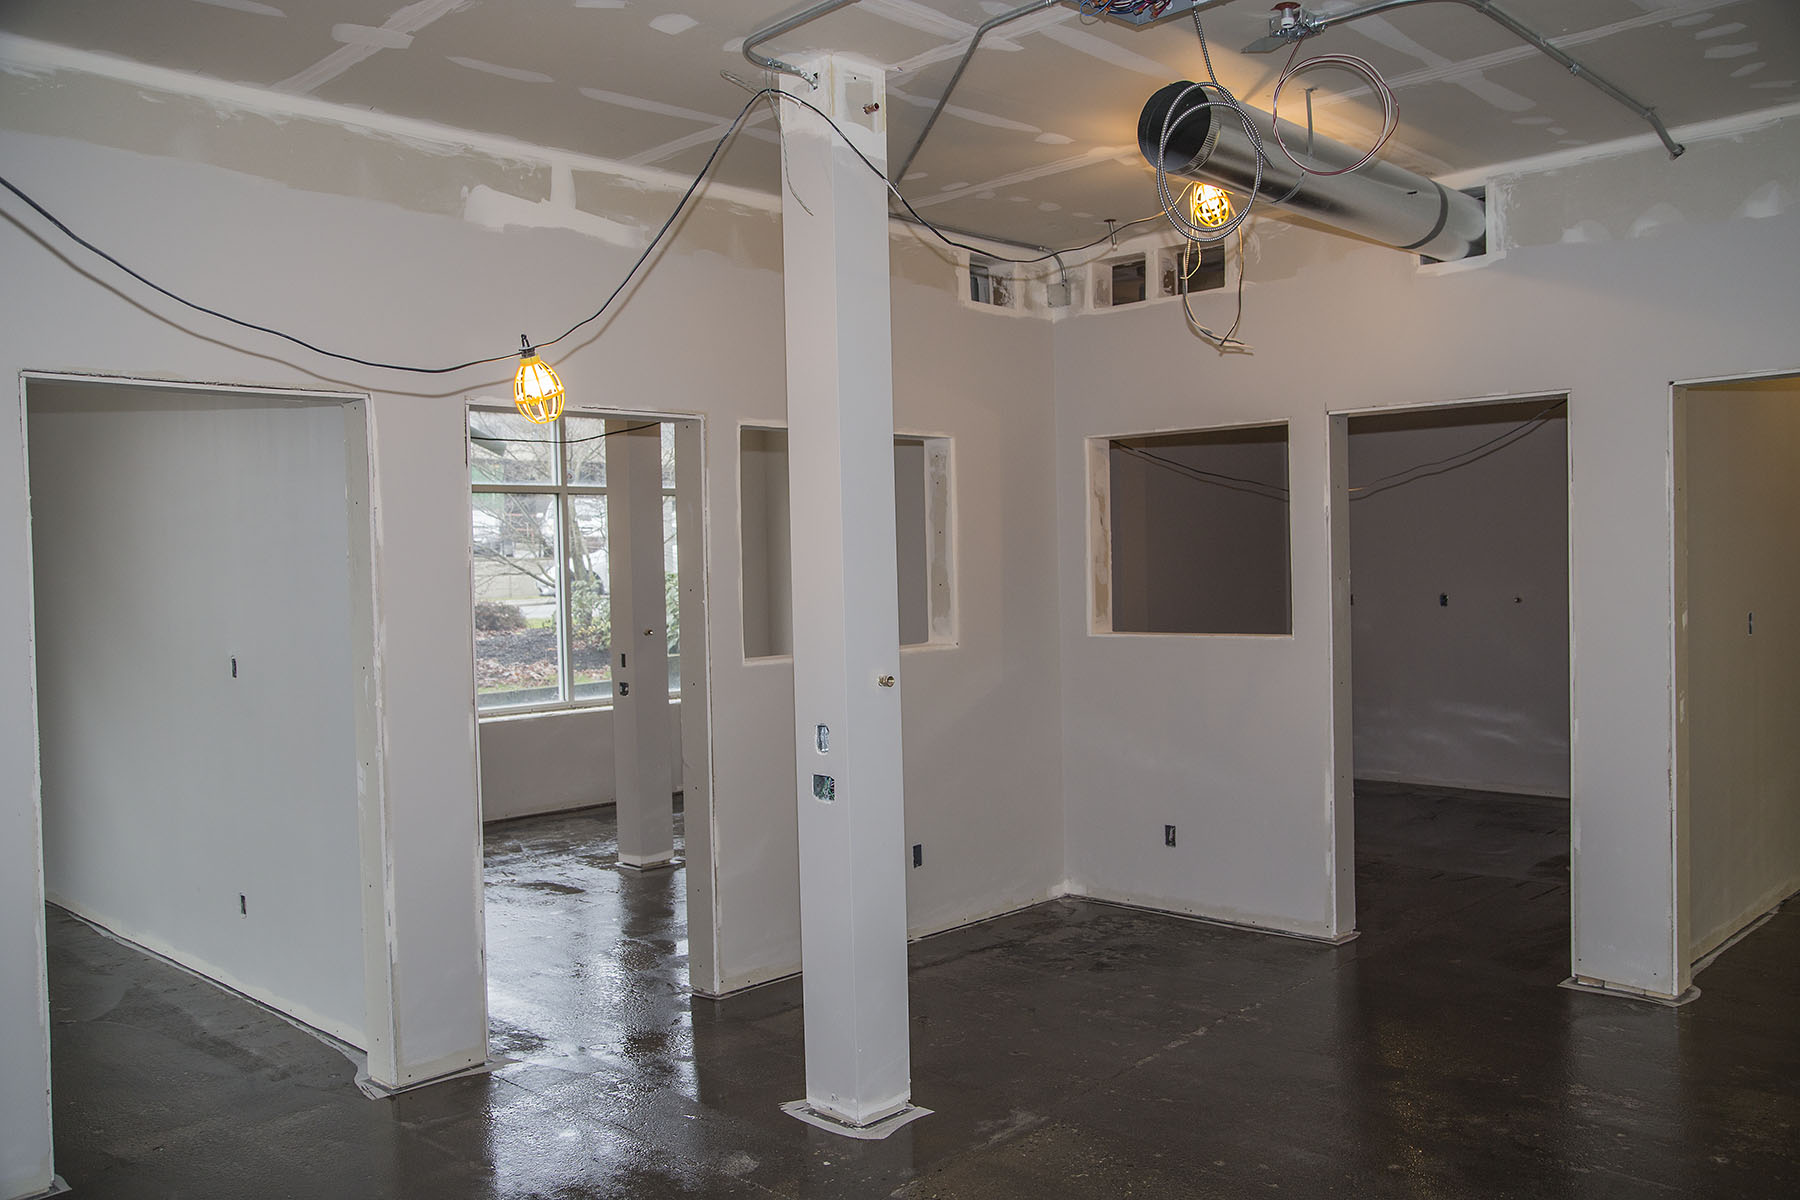 Dry Wall Construction : Commercial drywall projects